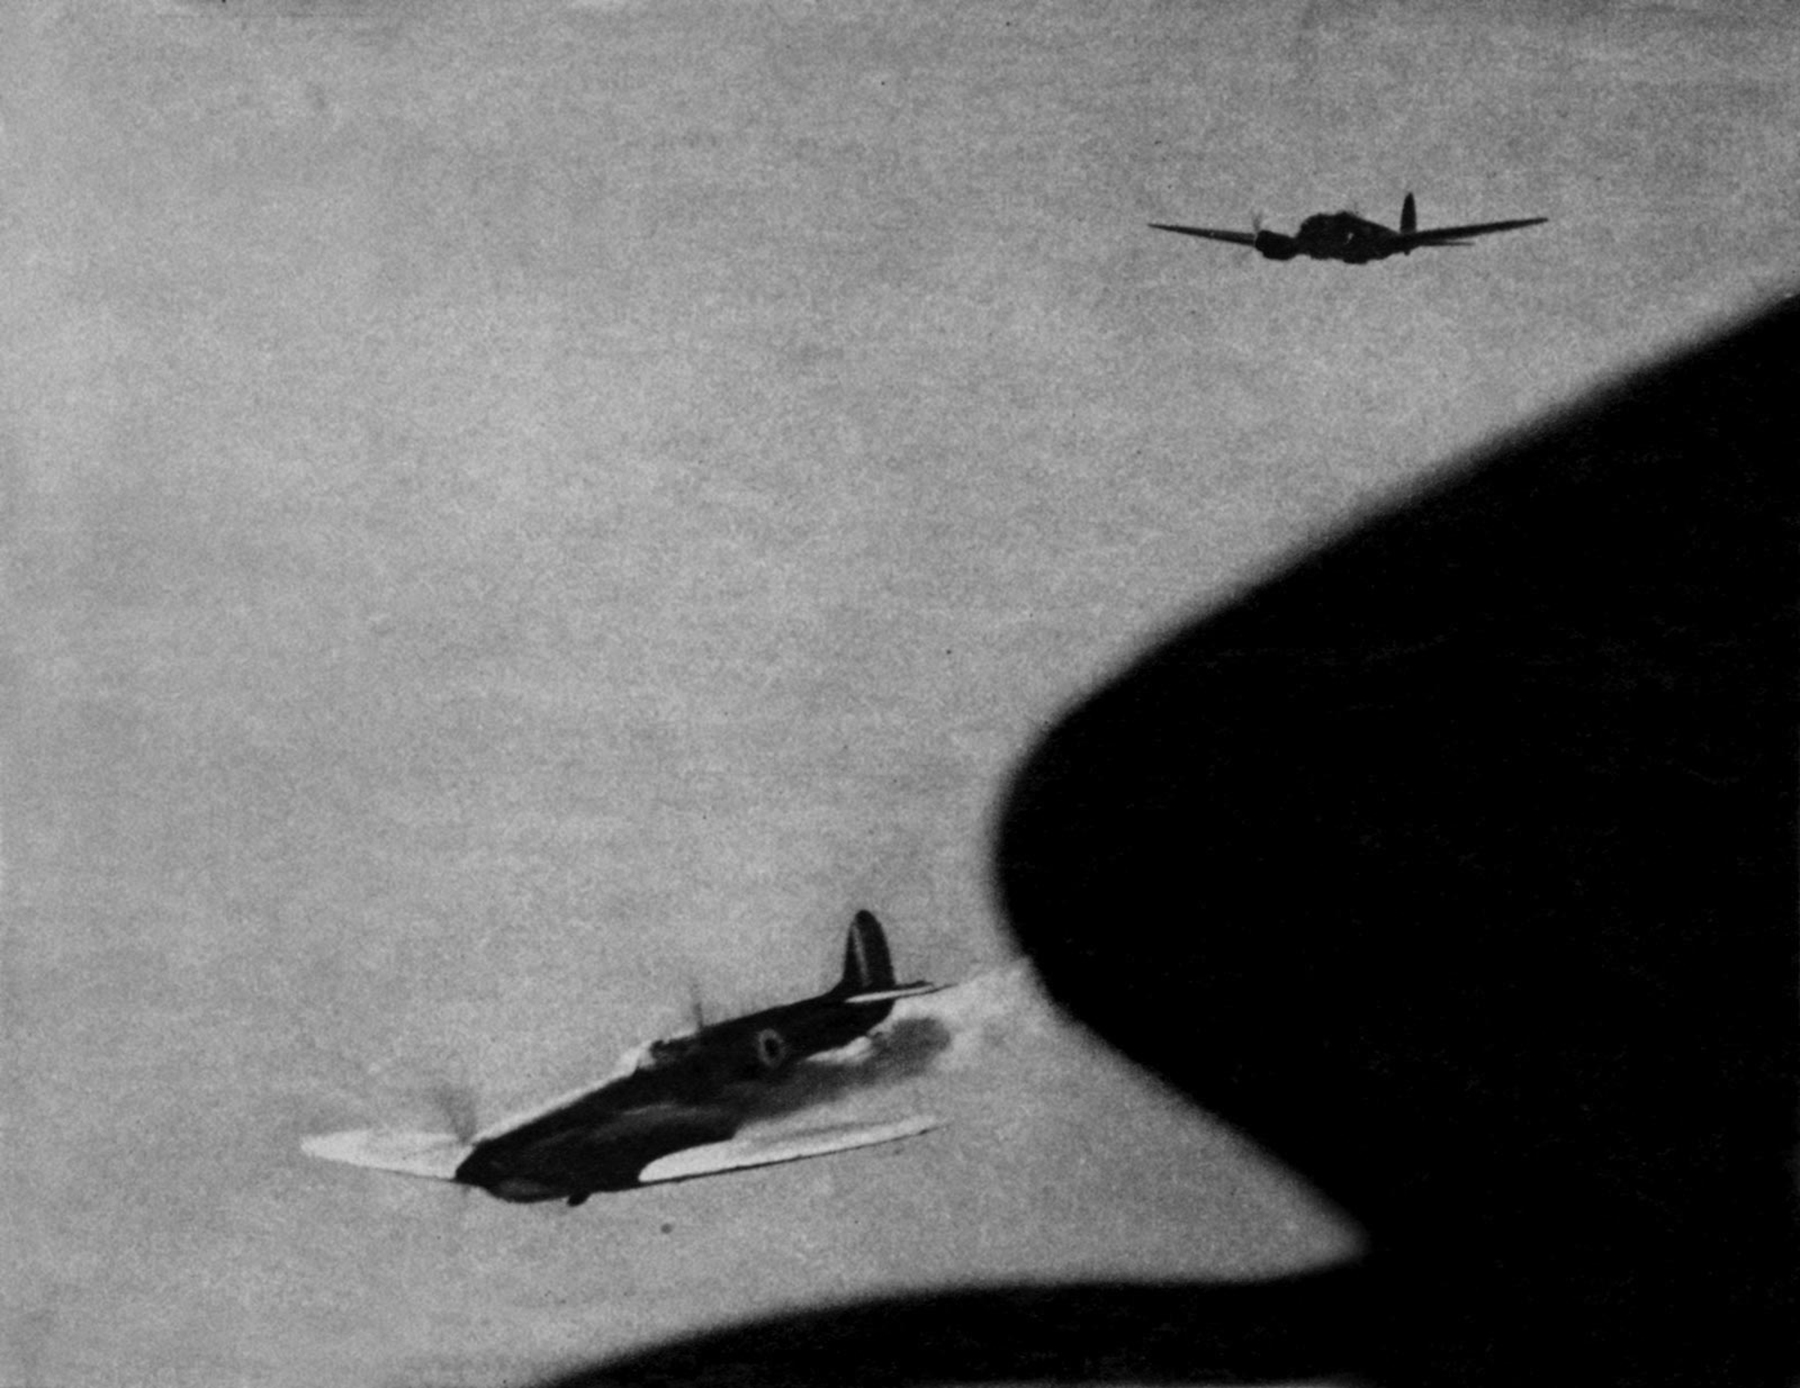 Camera battle footage between Luftwaffe He 111H bombers and a RAF Spitfire off the coast Spring 1941 04